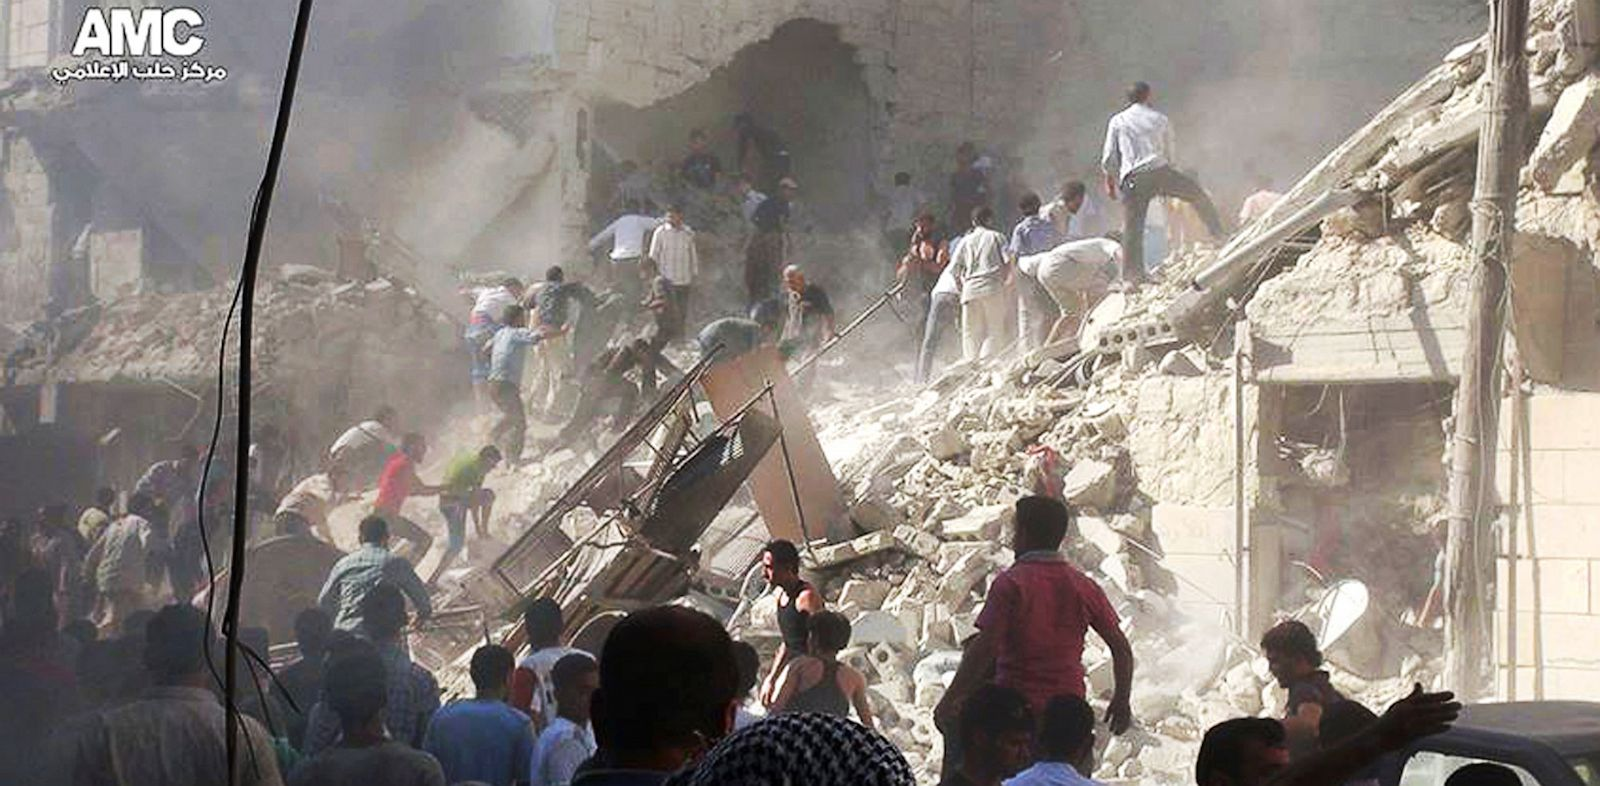 PHOTO: Syrians inspect the rubble of damaged buildings due to heavy shelling by Syrian government forces in Aleppo, Syria, Aug. 26, 2013, in this citizen journalism image, which has been authenticated based on its contents and other AP reporting,